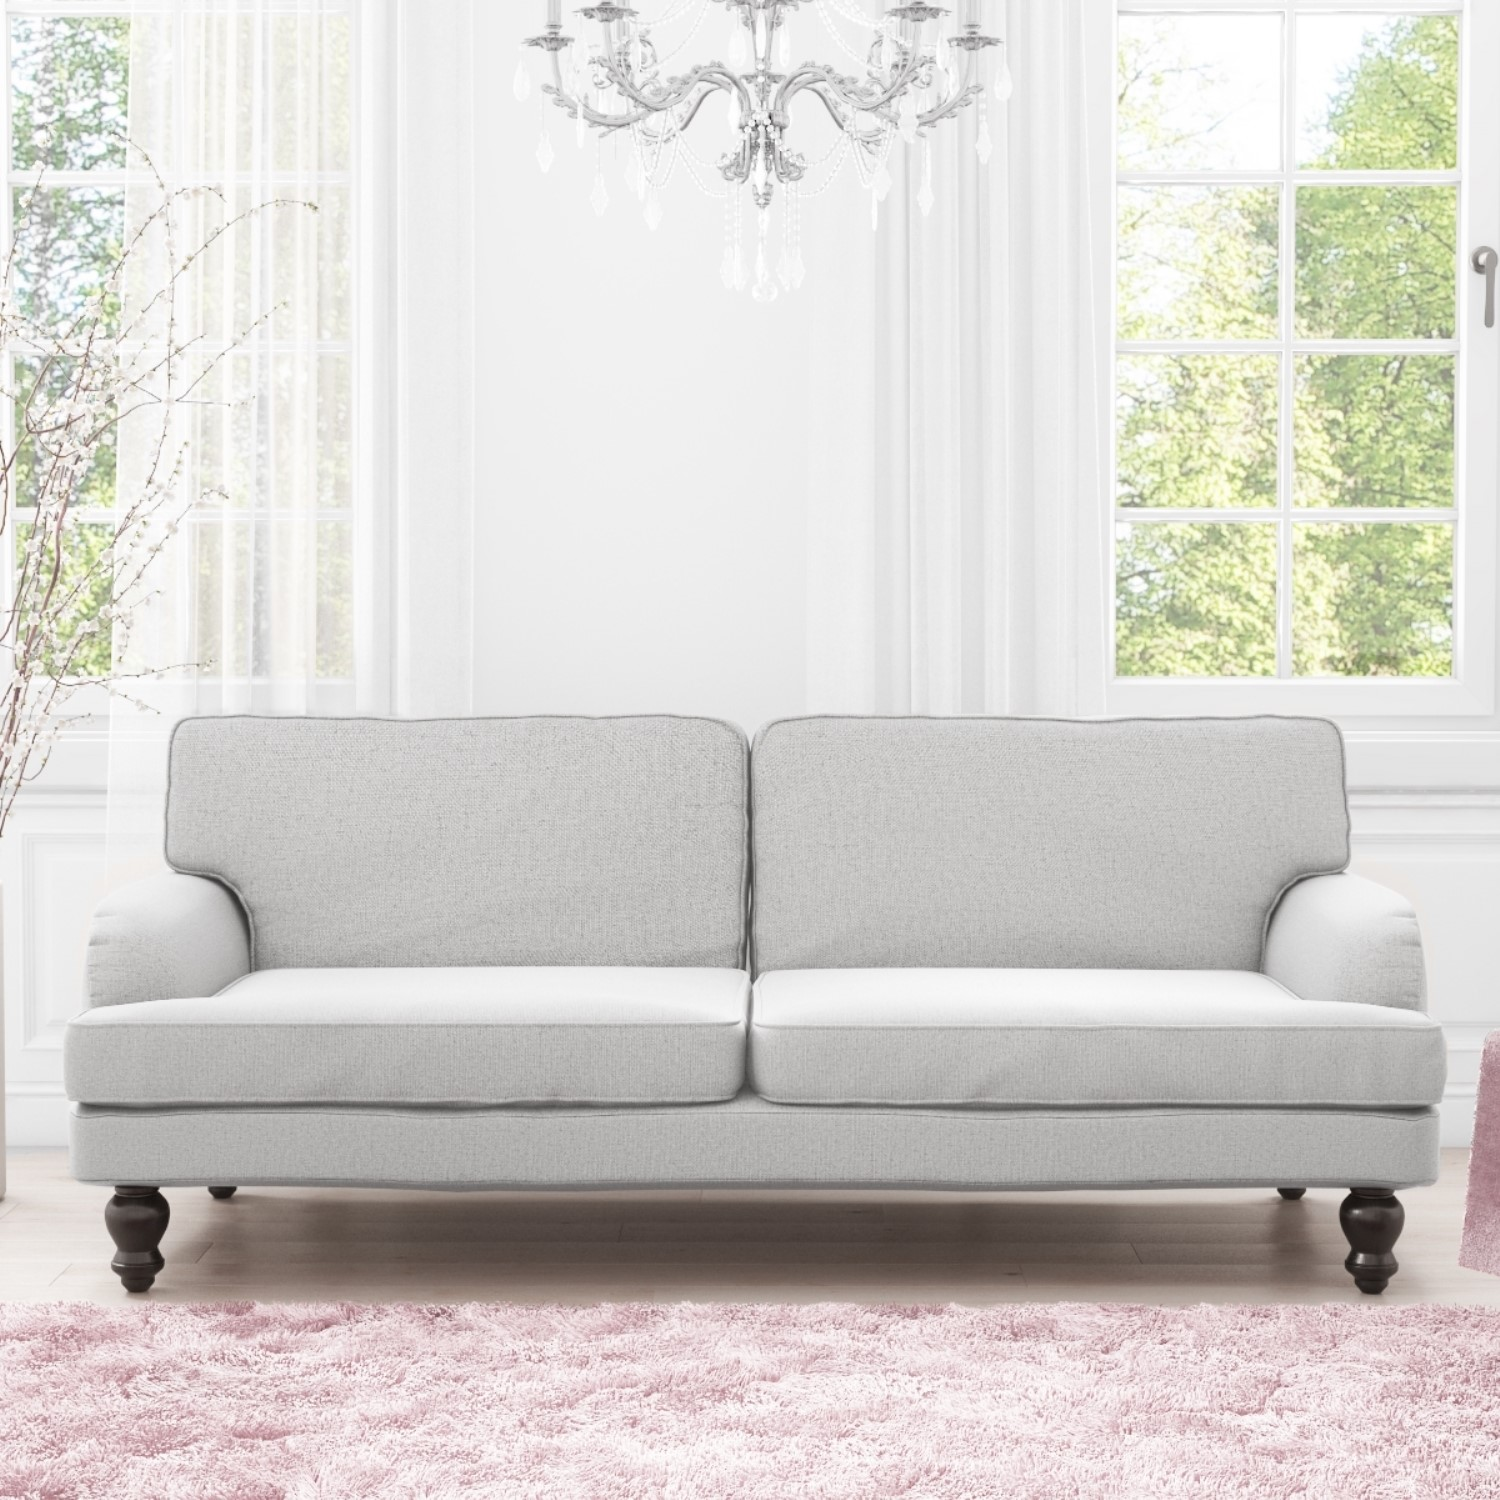 Phenomenal Details About Luxury Modern 3 Seater Sofa Sofa Bed In Light Grey Ocoug Best Dining Table And Chair Ideas Images Ocougorg